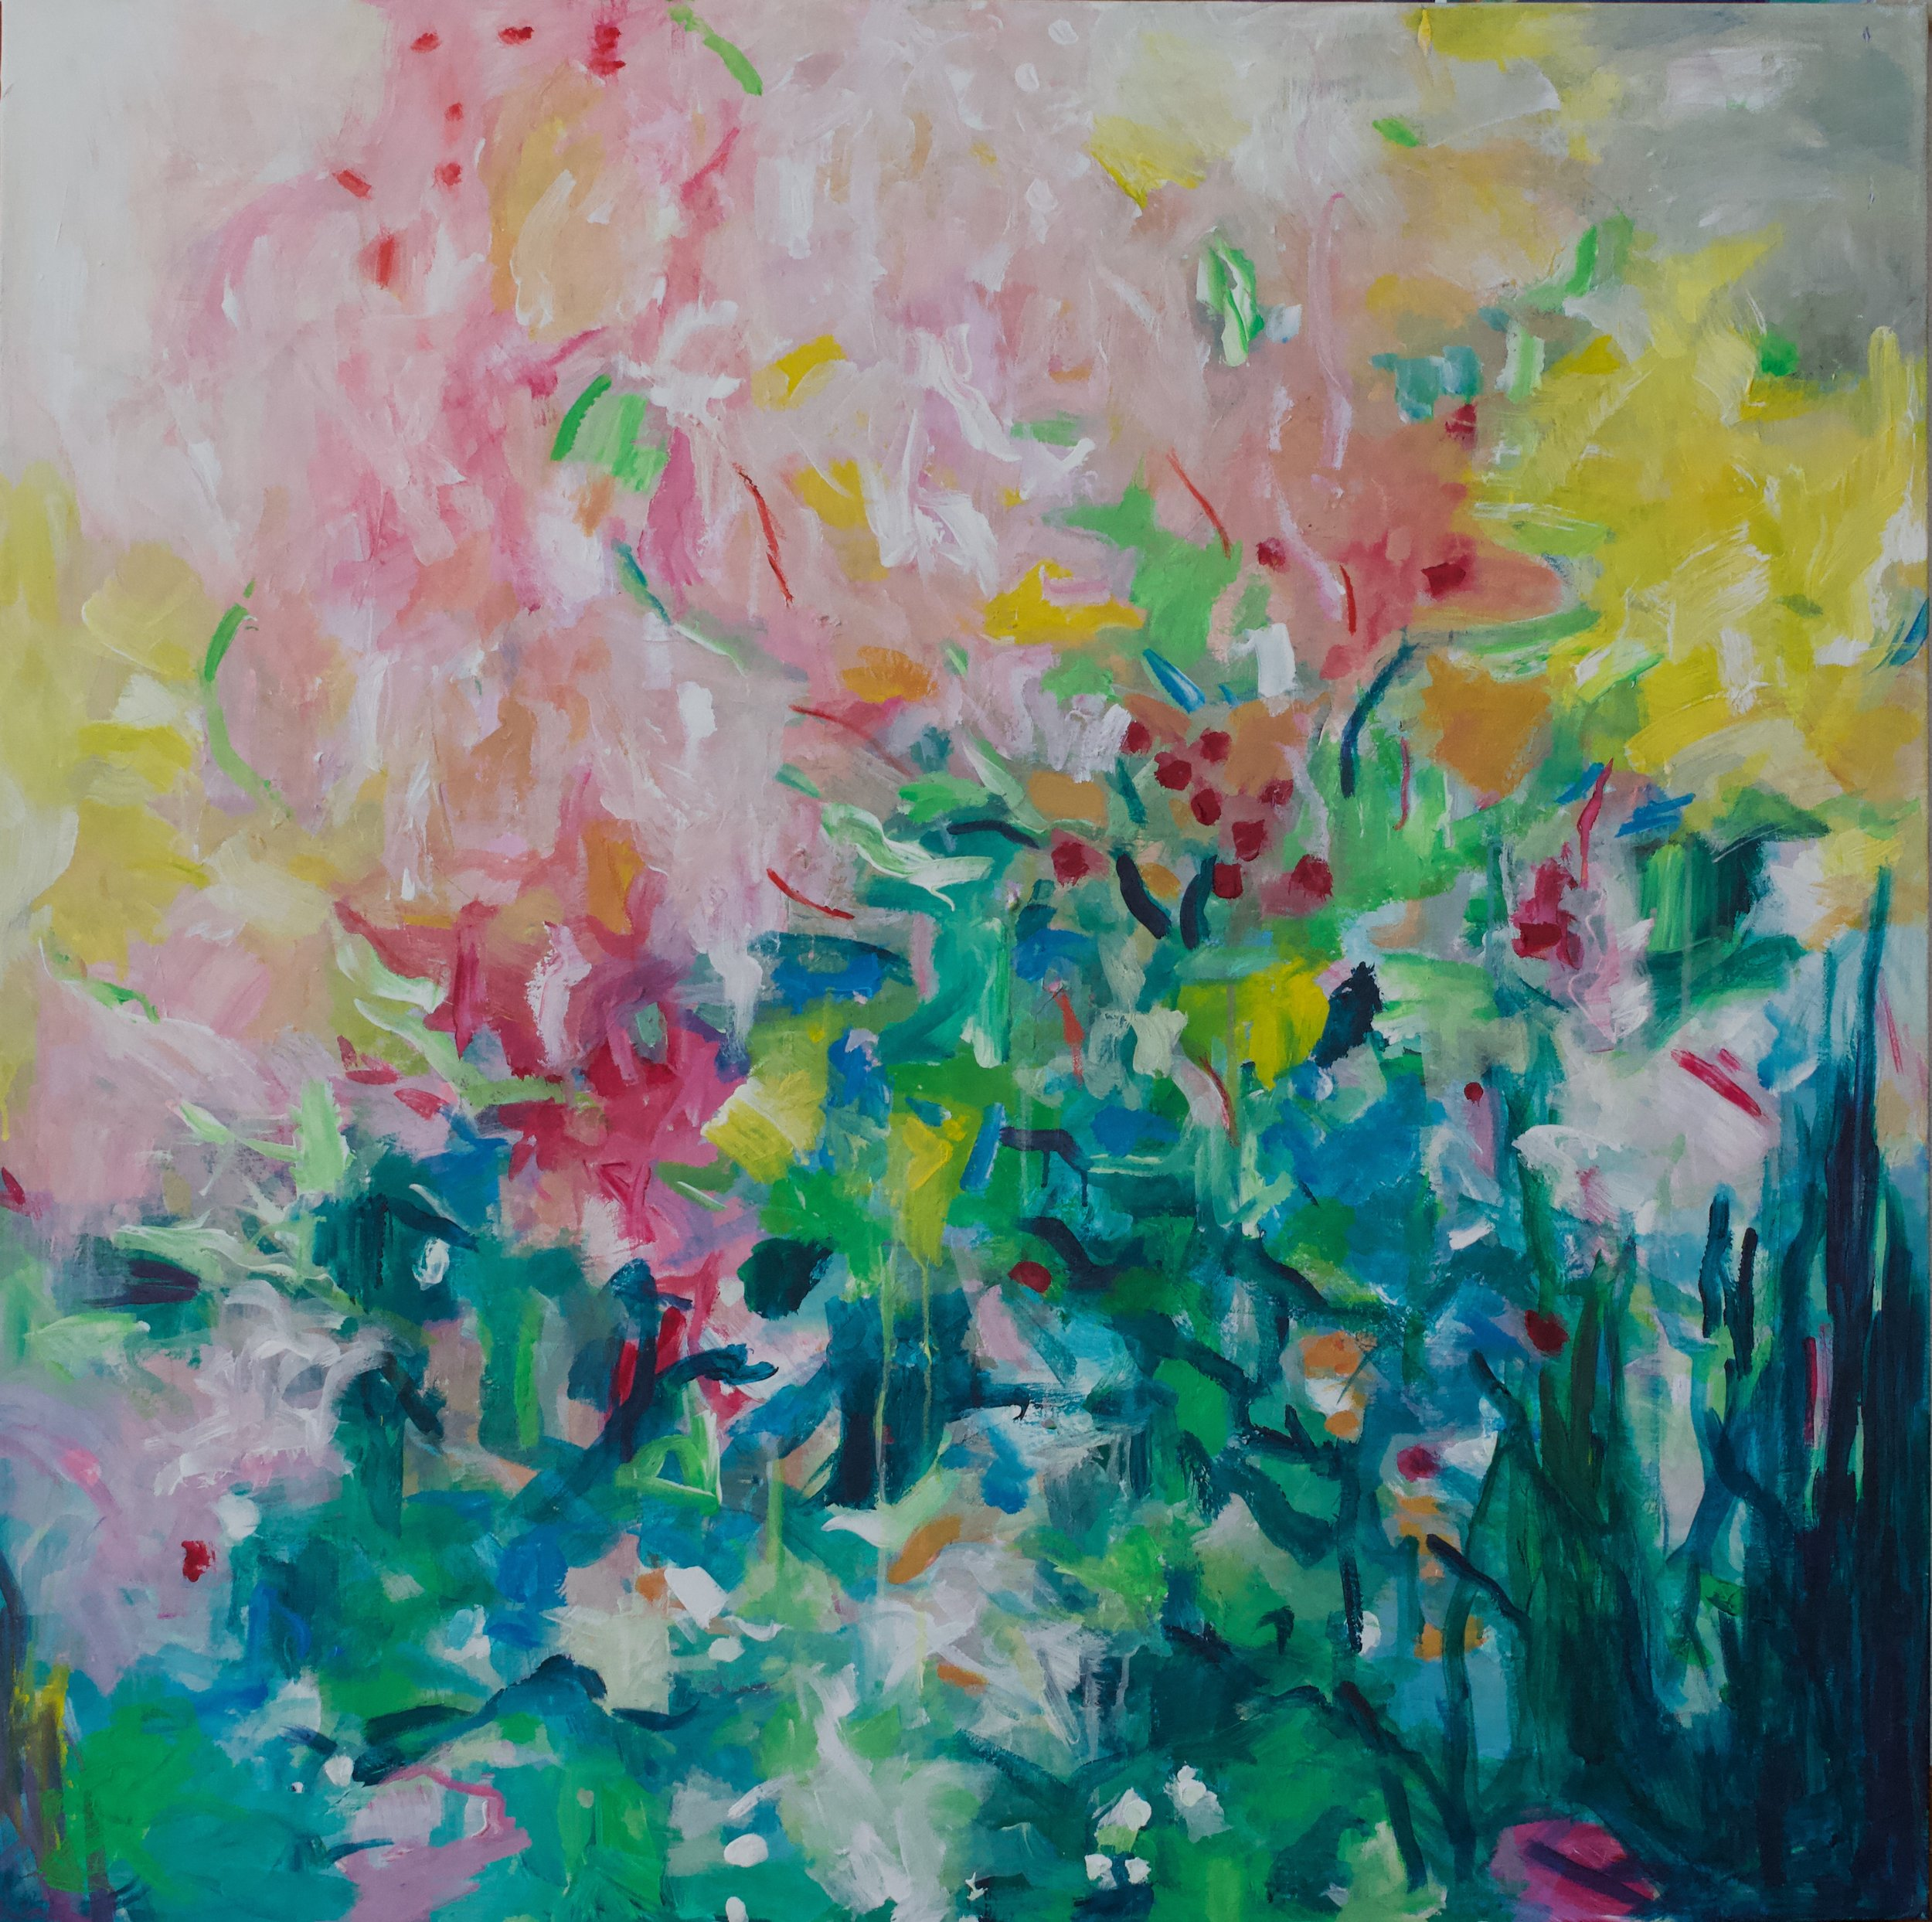 Flowers enjoying the sun 100 x 100 x 3,5 cm acrylics on canvas